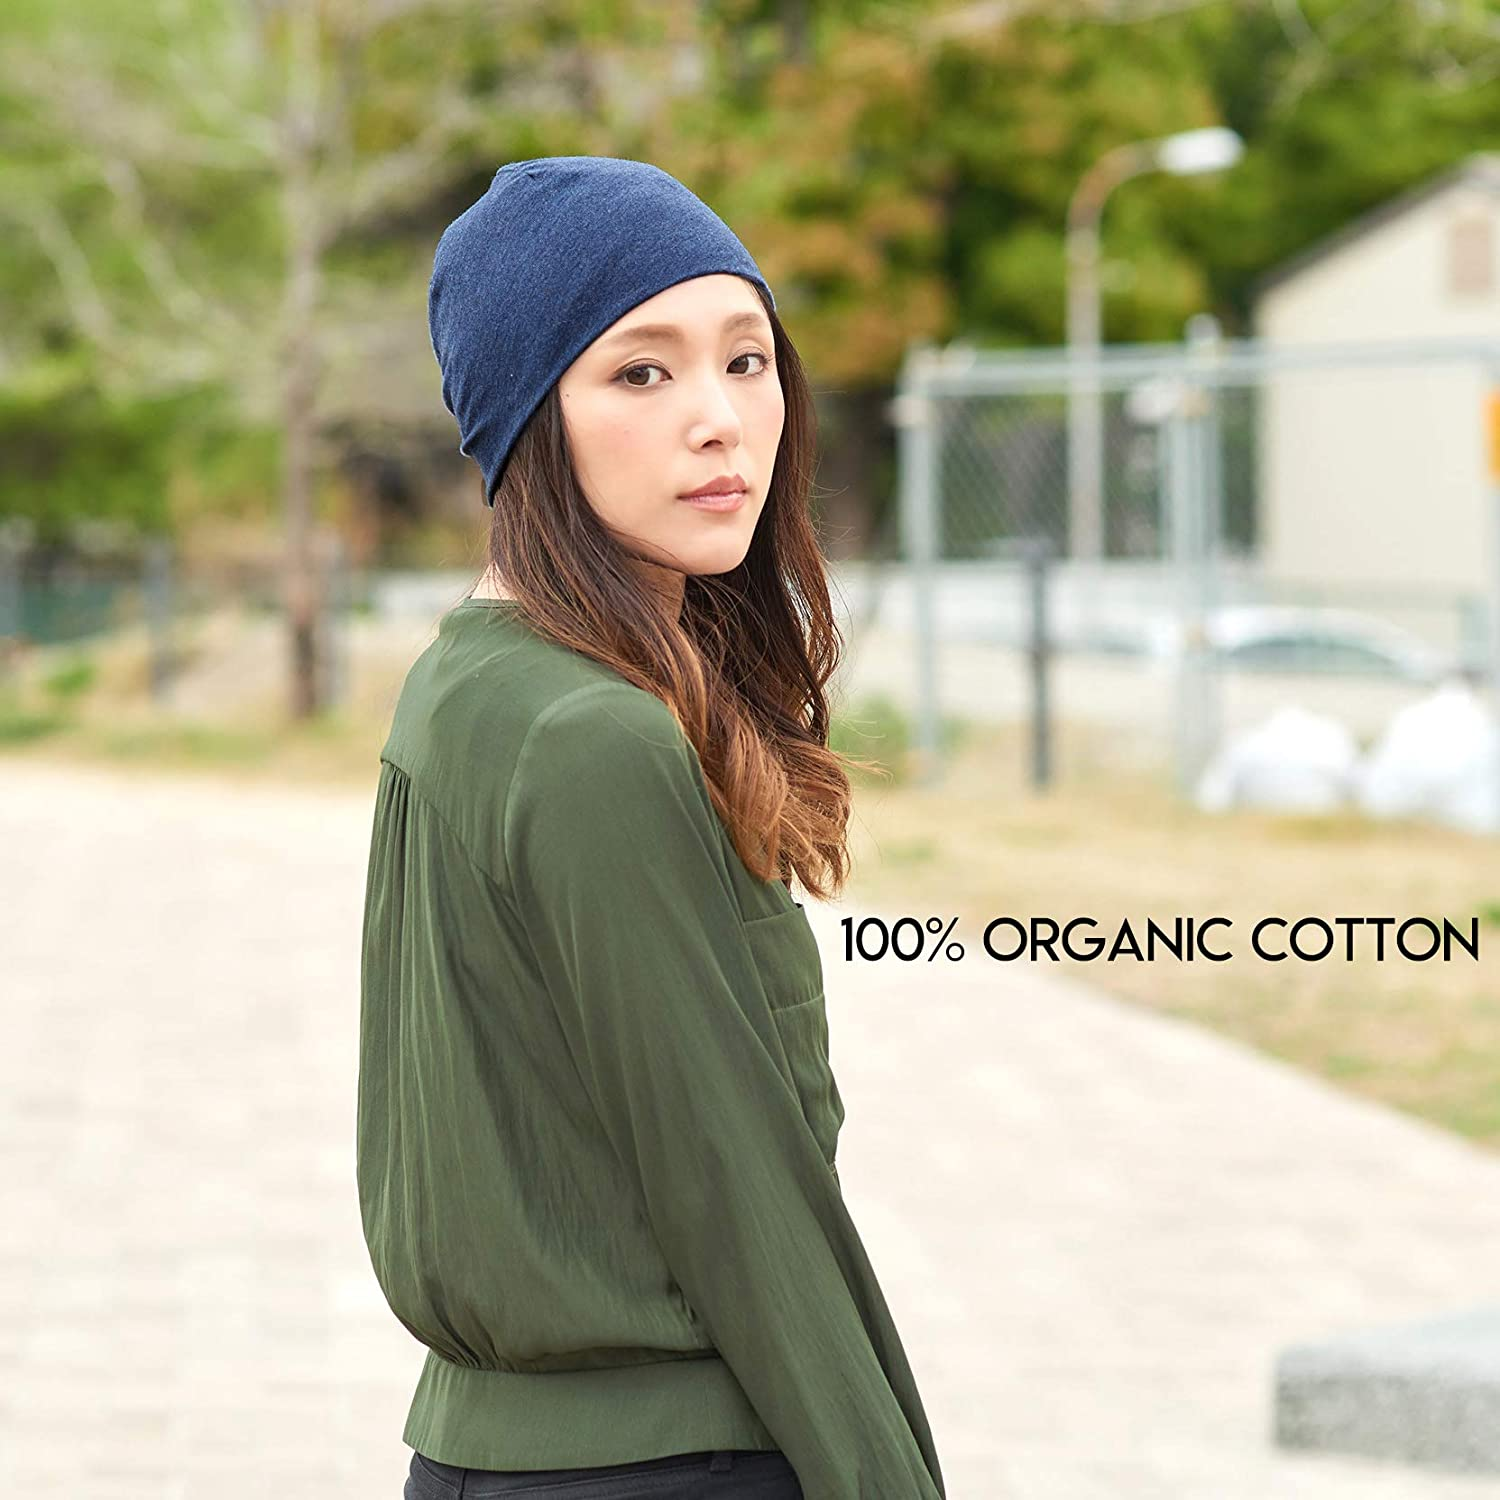 38d4702af90 Amazon.com  CHARM 100% Organic Cotton Beanie - Soft Chemo Hat Tight Fit  Sensitive Skin Cap Medical Wear Snug Form Fitting Unisex Black  Clothing